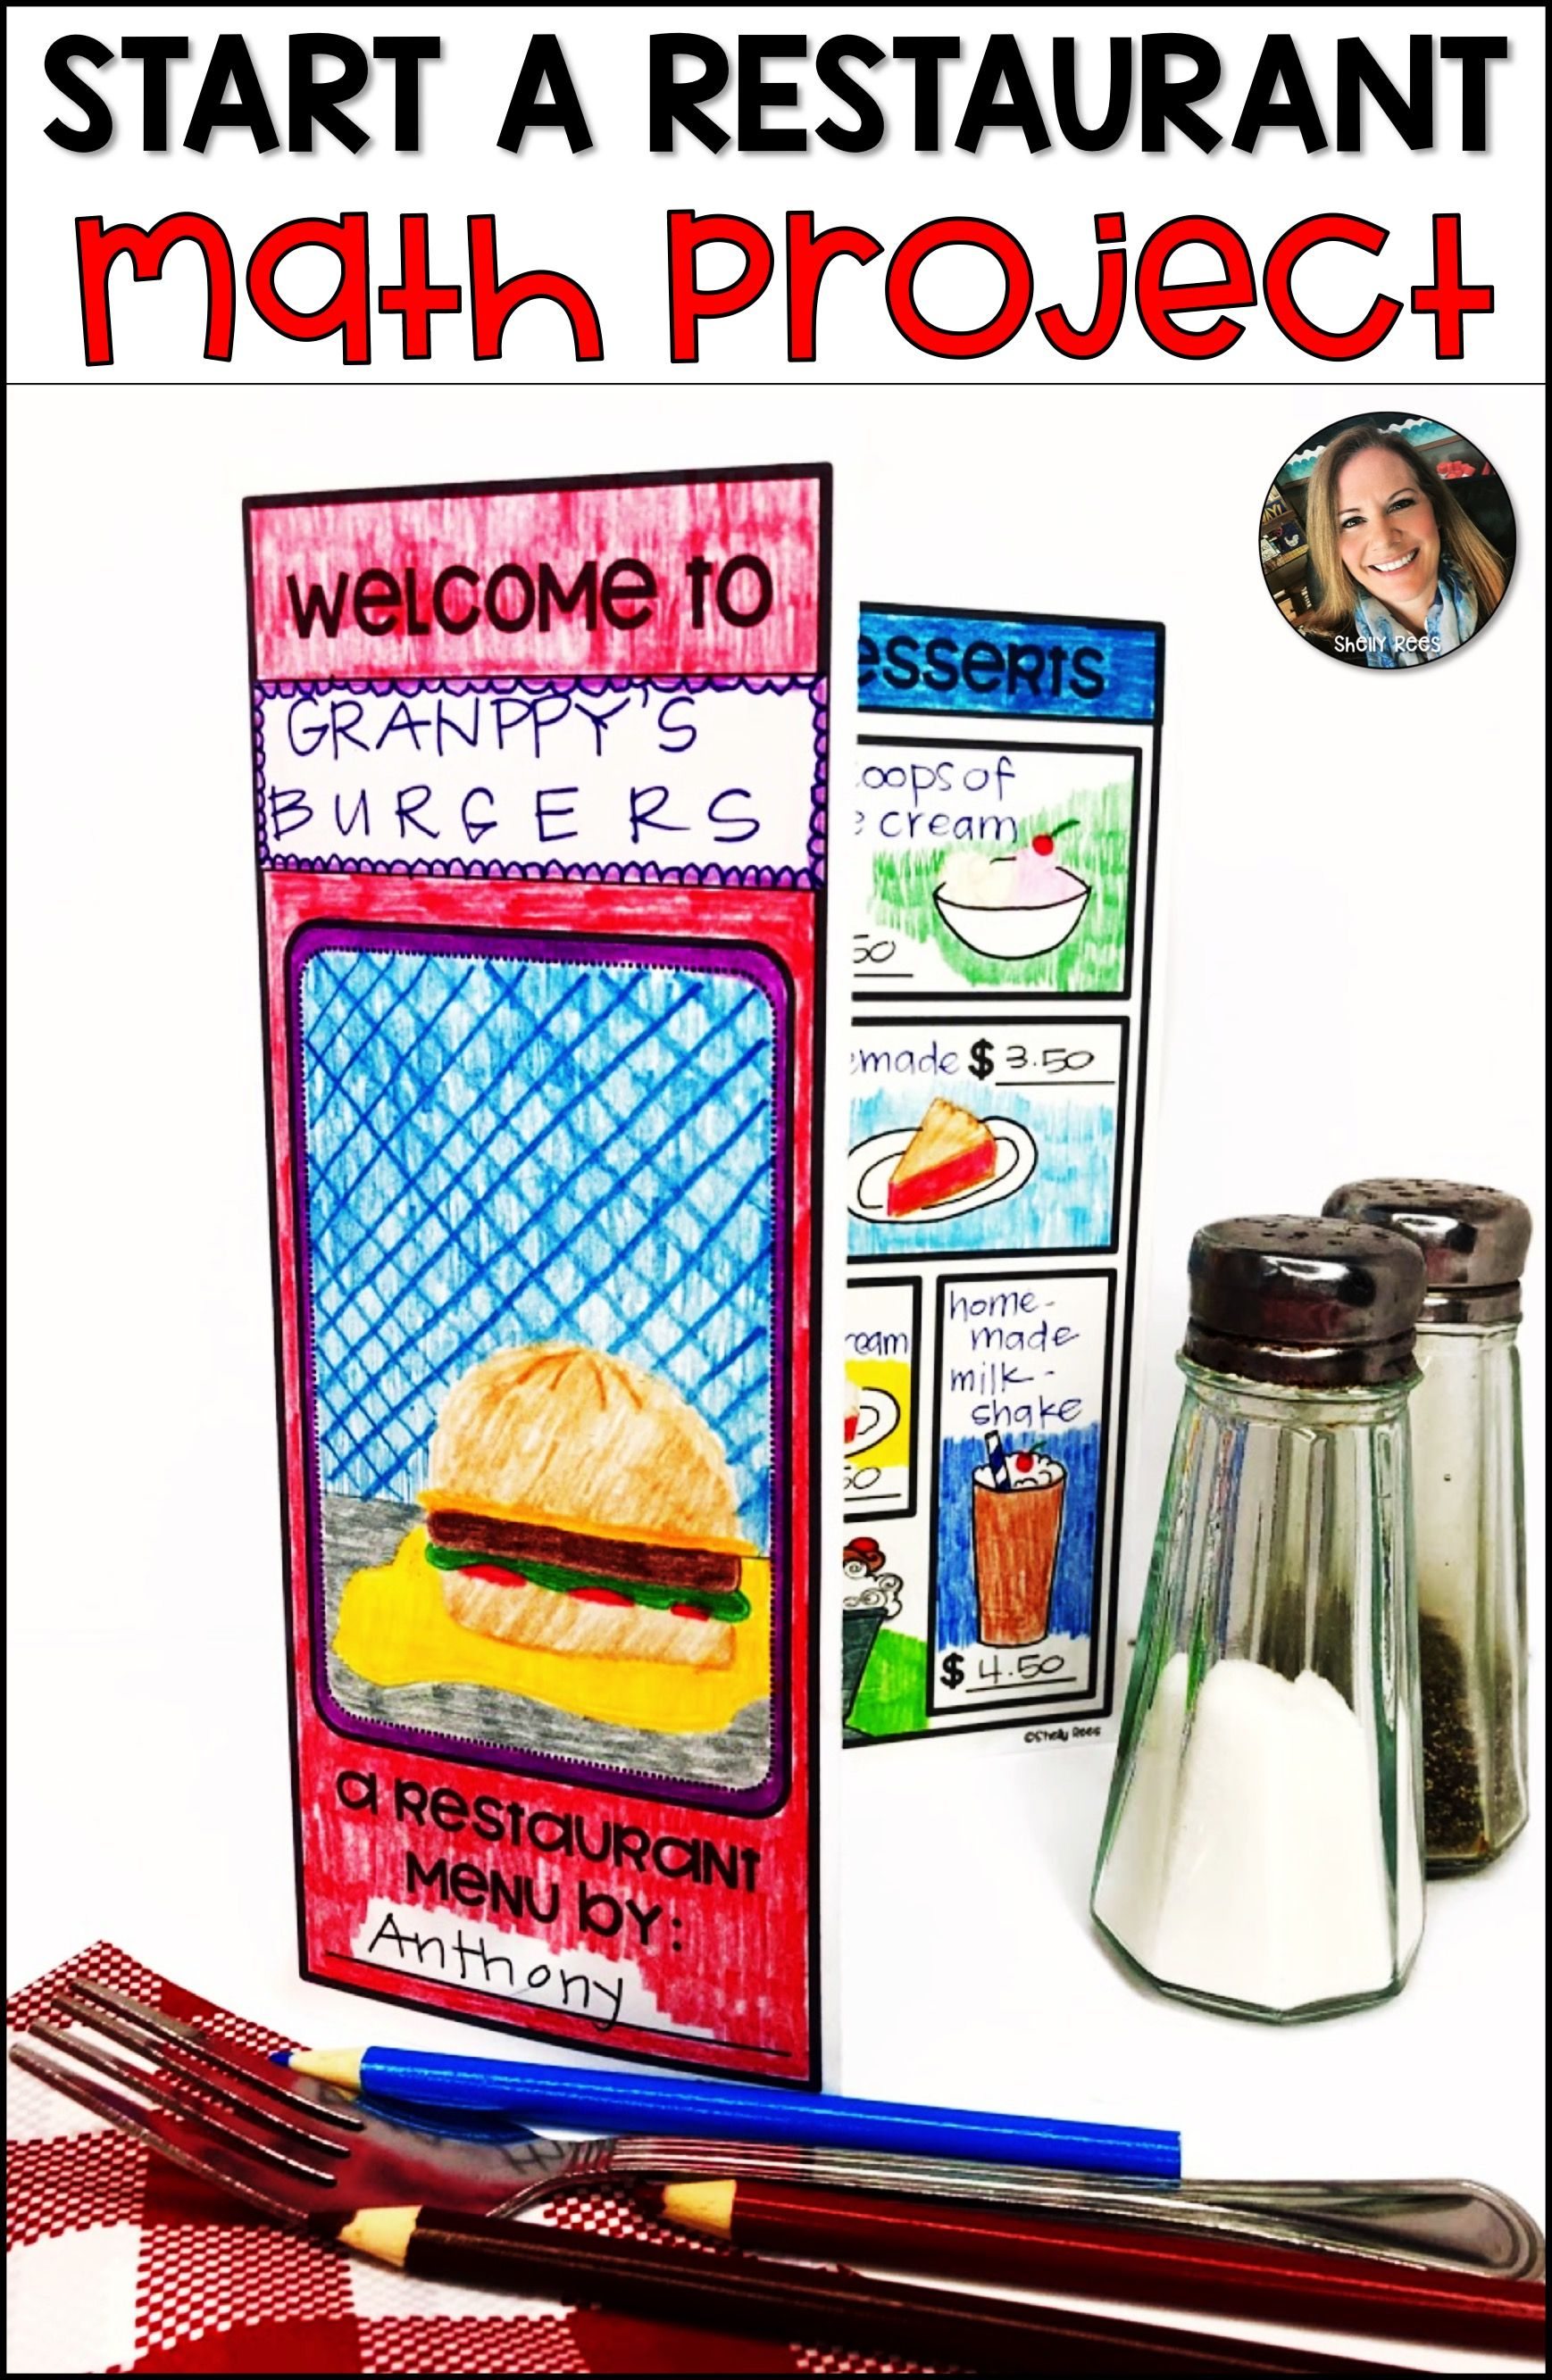 Restaurant Menu Project Based Learning